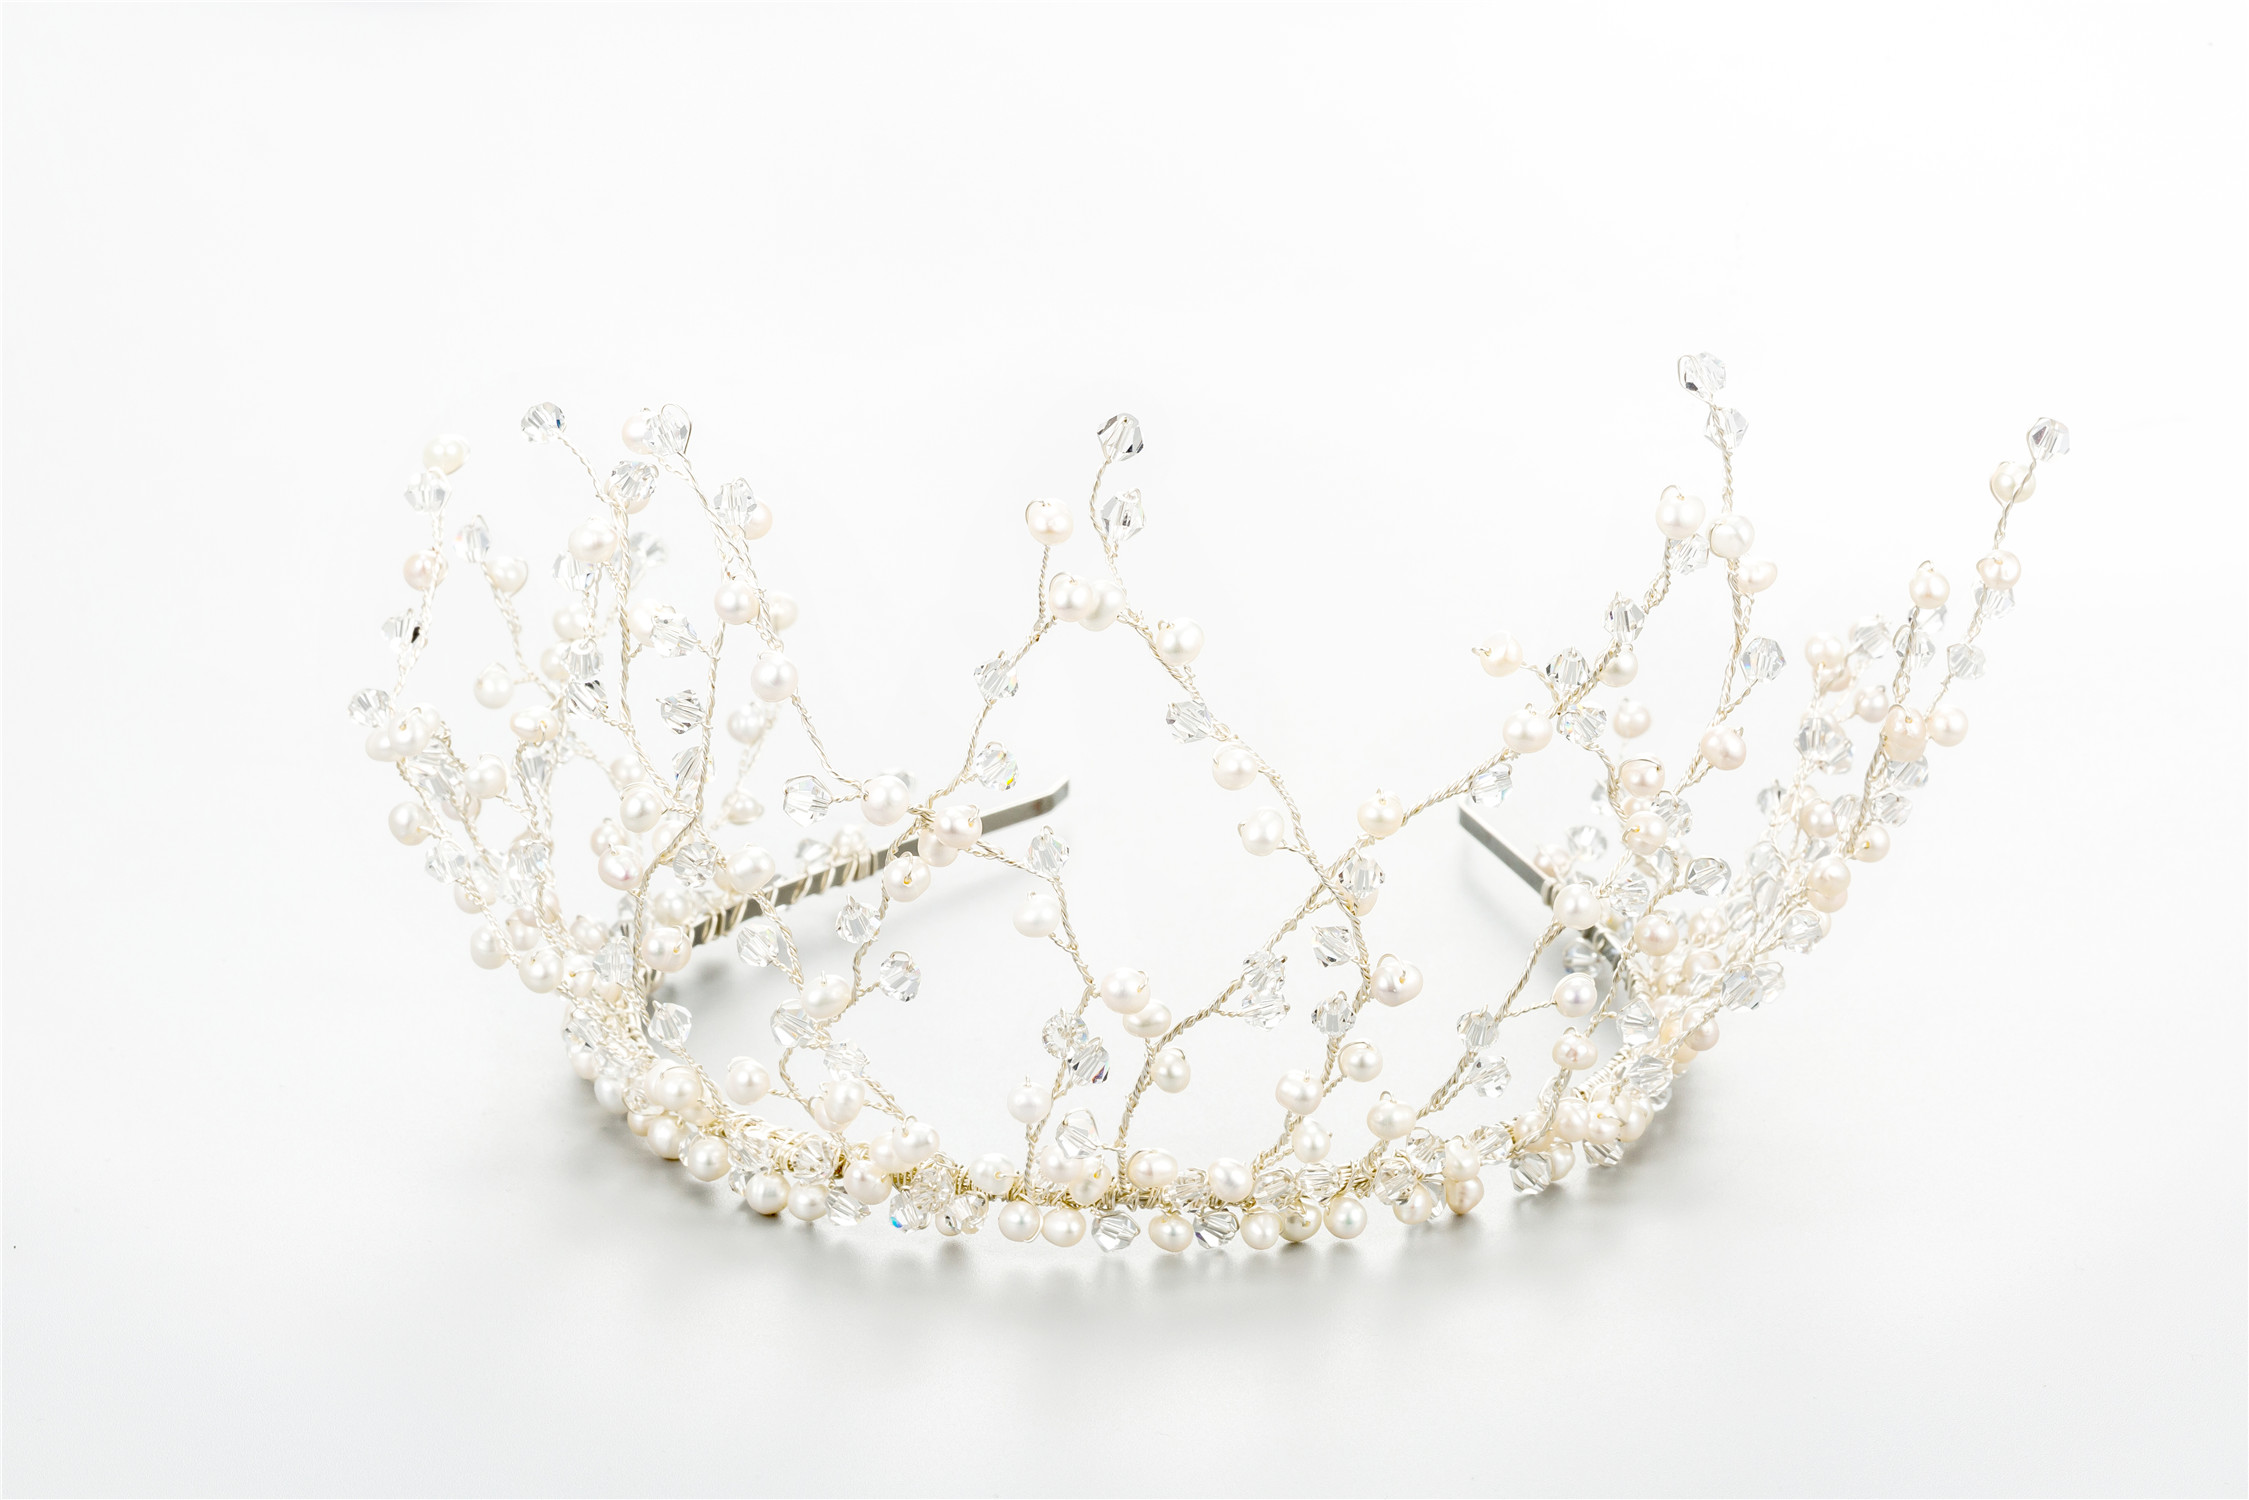 New Developed Zinc Alloy Wedding Decorative Imported Rhinestone Crown Of The Bride